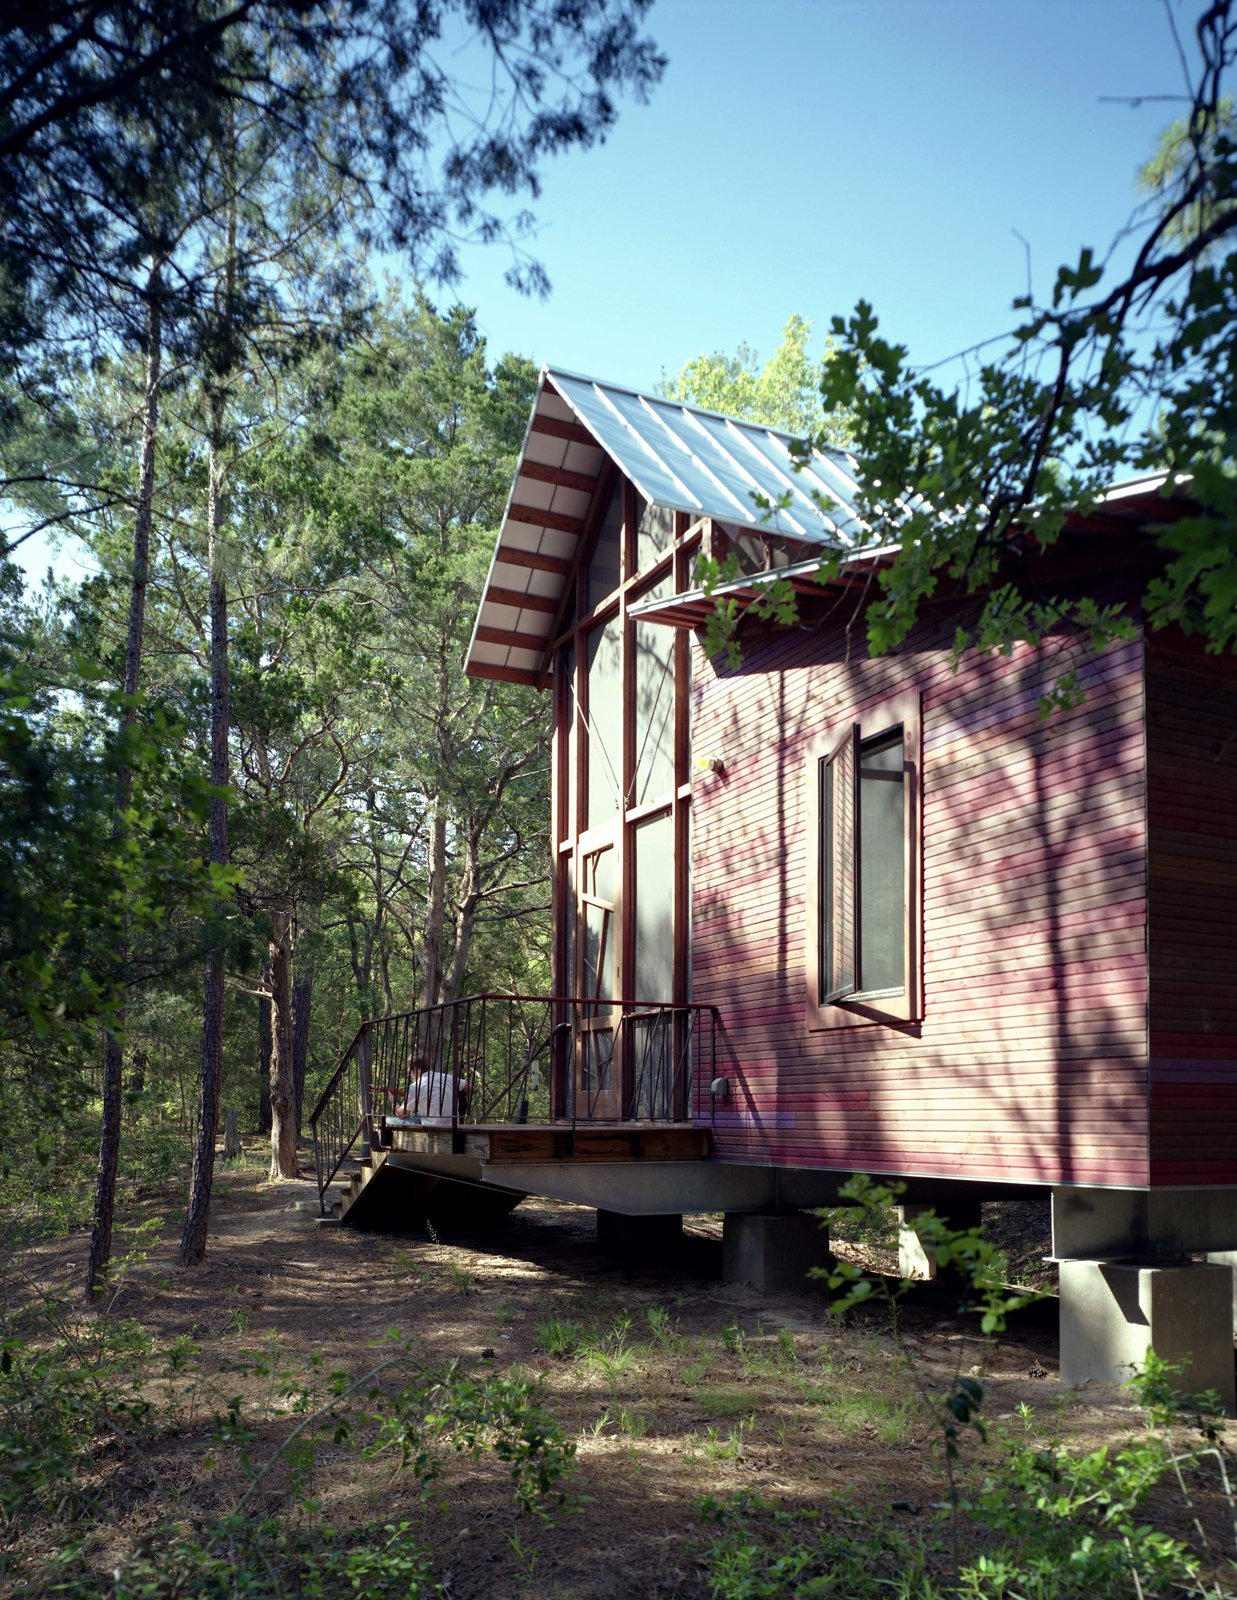 The bunkhouse and path beyond.  Texas Bunkhouse by Erika Heet